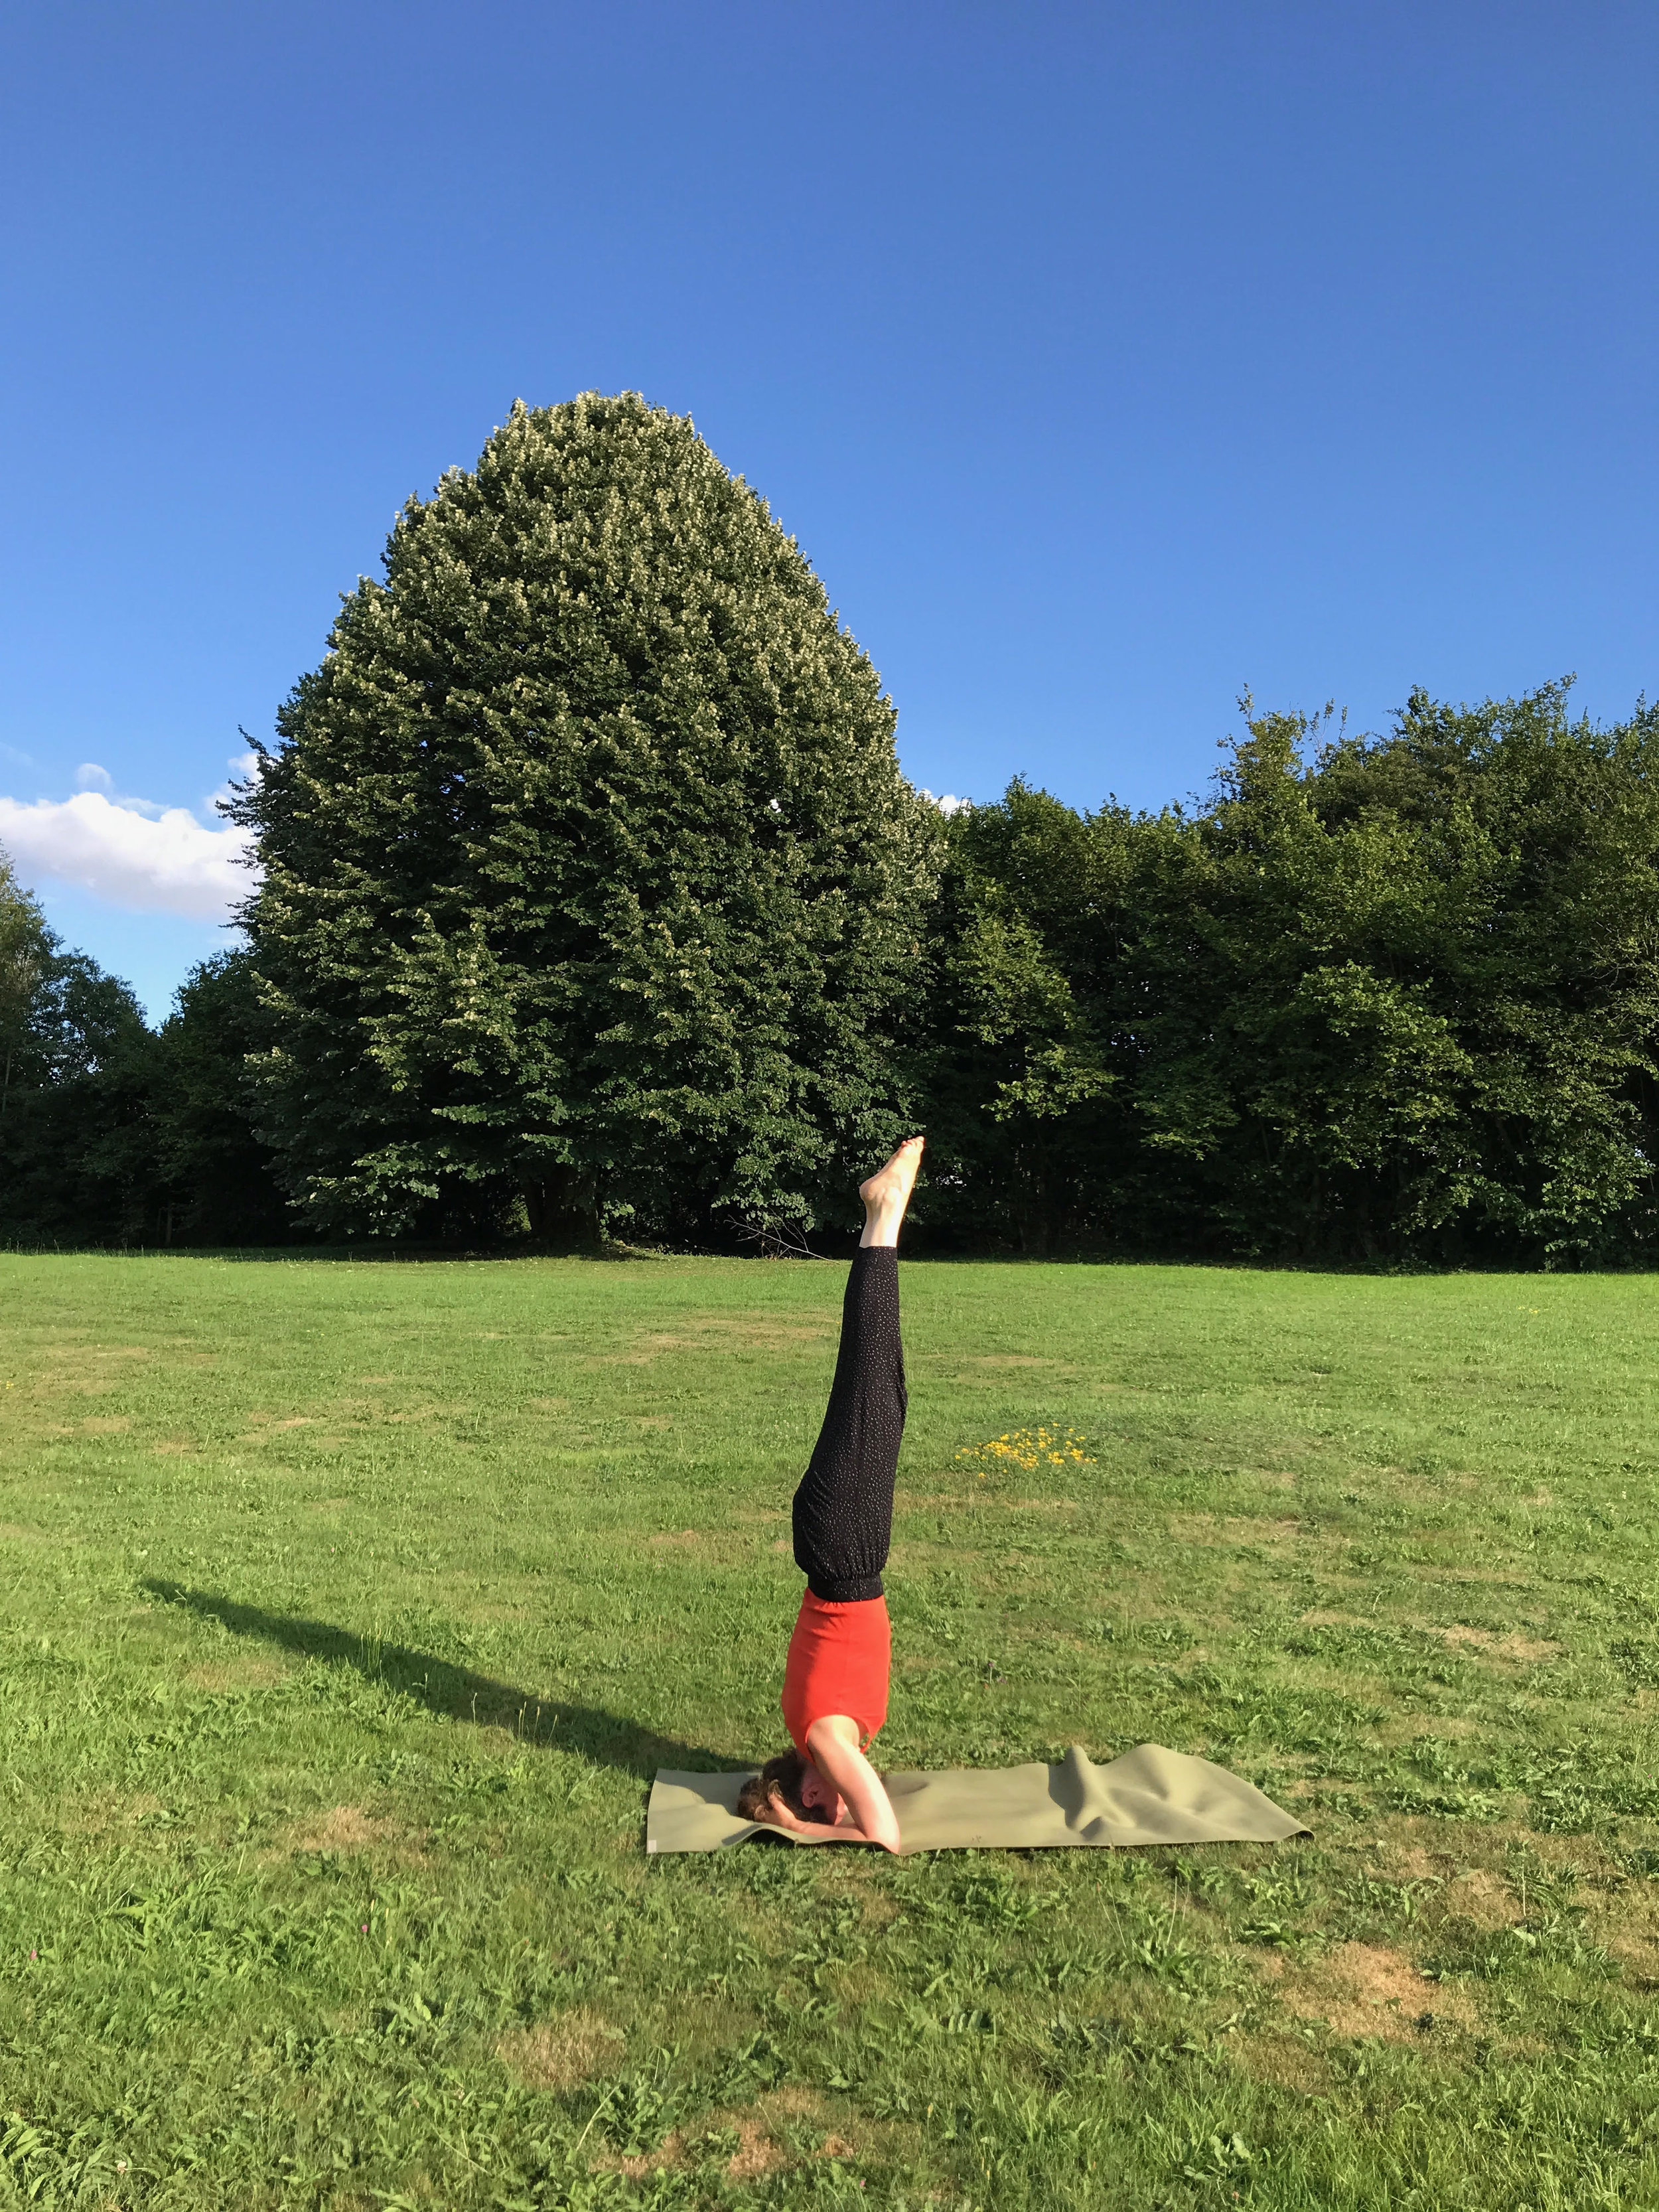 Doing a Headstand - Going upside down to get a better perspective